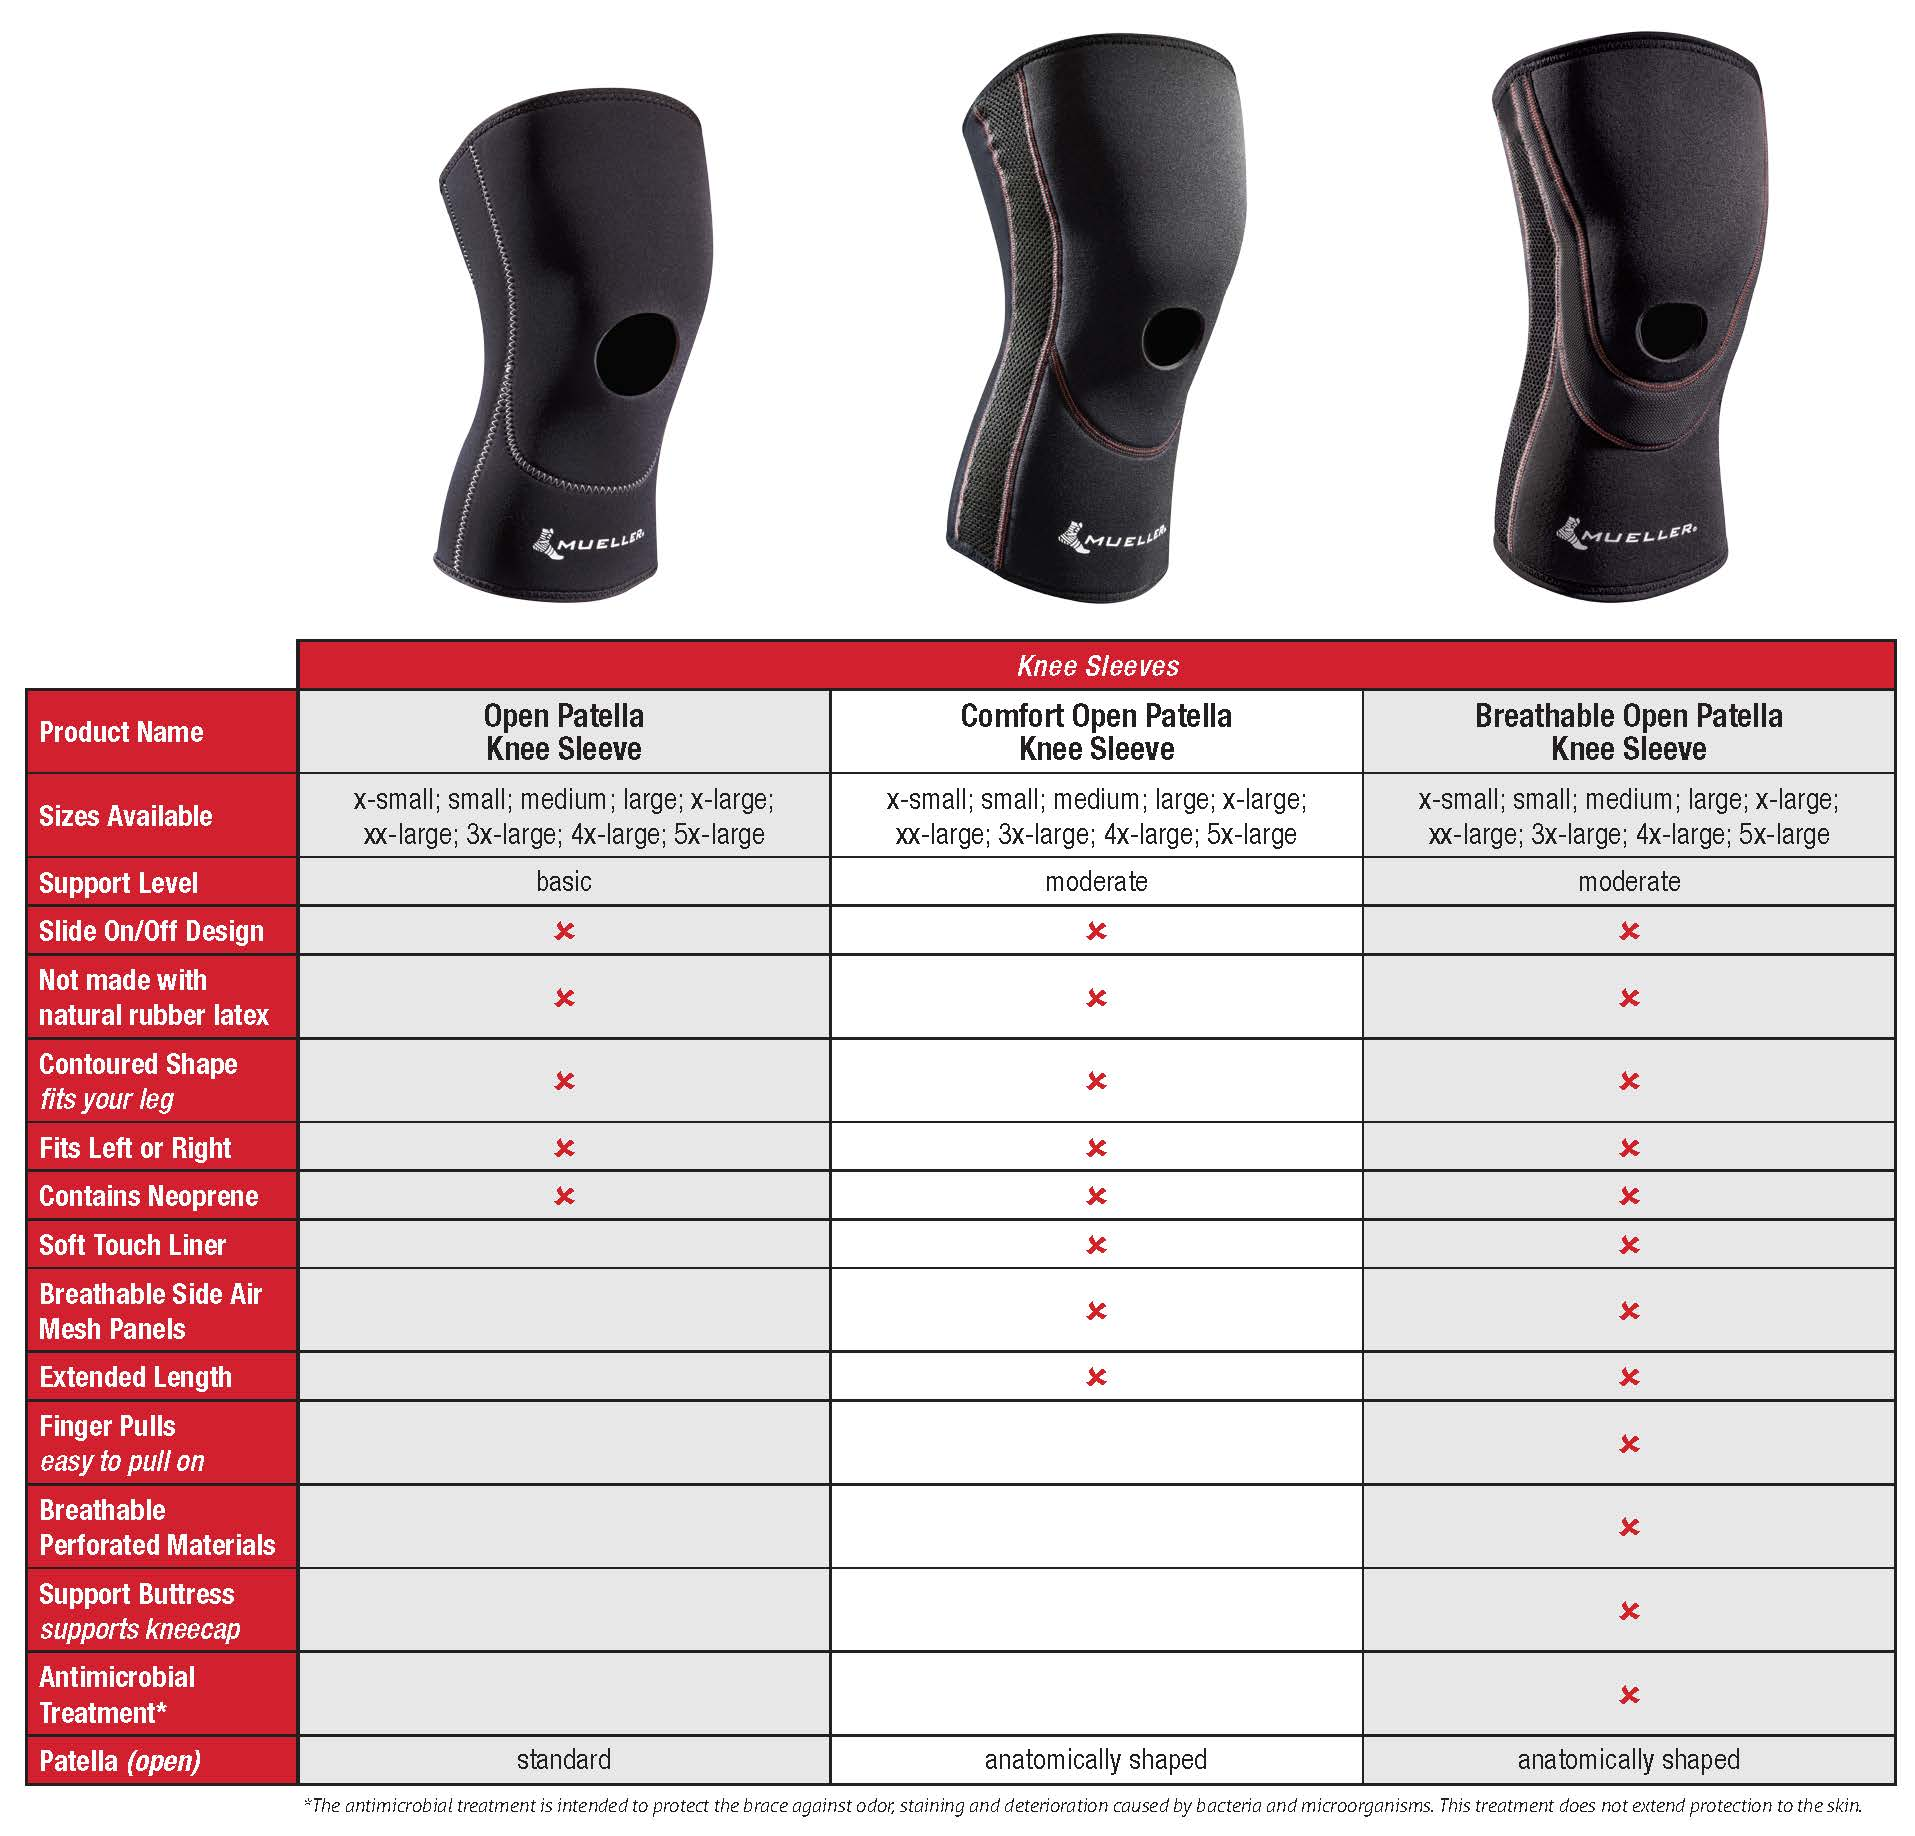 Comfort Open Patella Knee Sleeve Comparison Chart